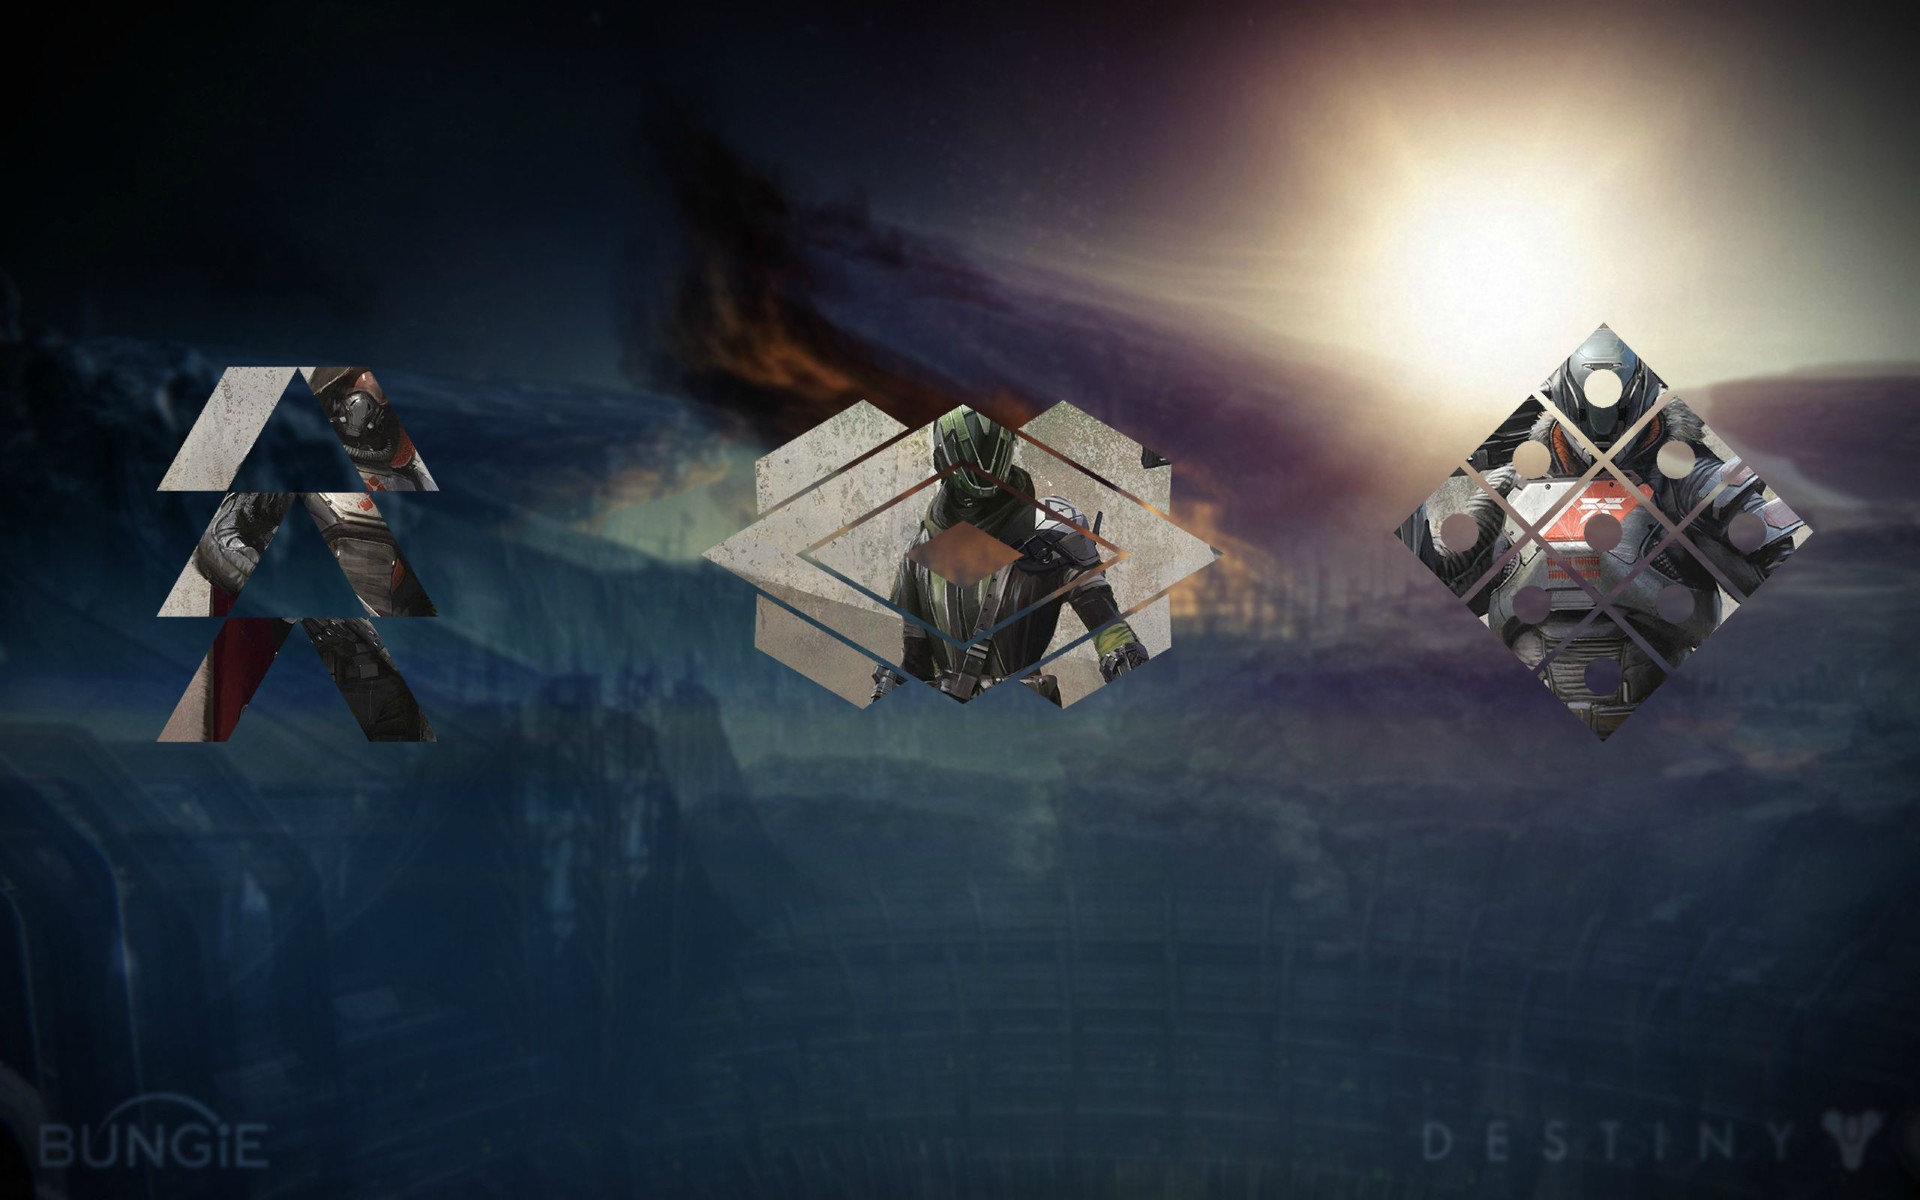 1920x1200 by Tangaroa Fillan Wallpaper for Android: Destiny